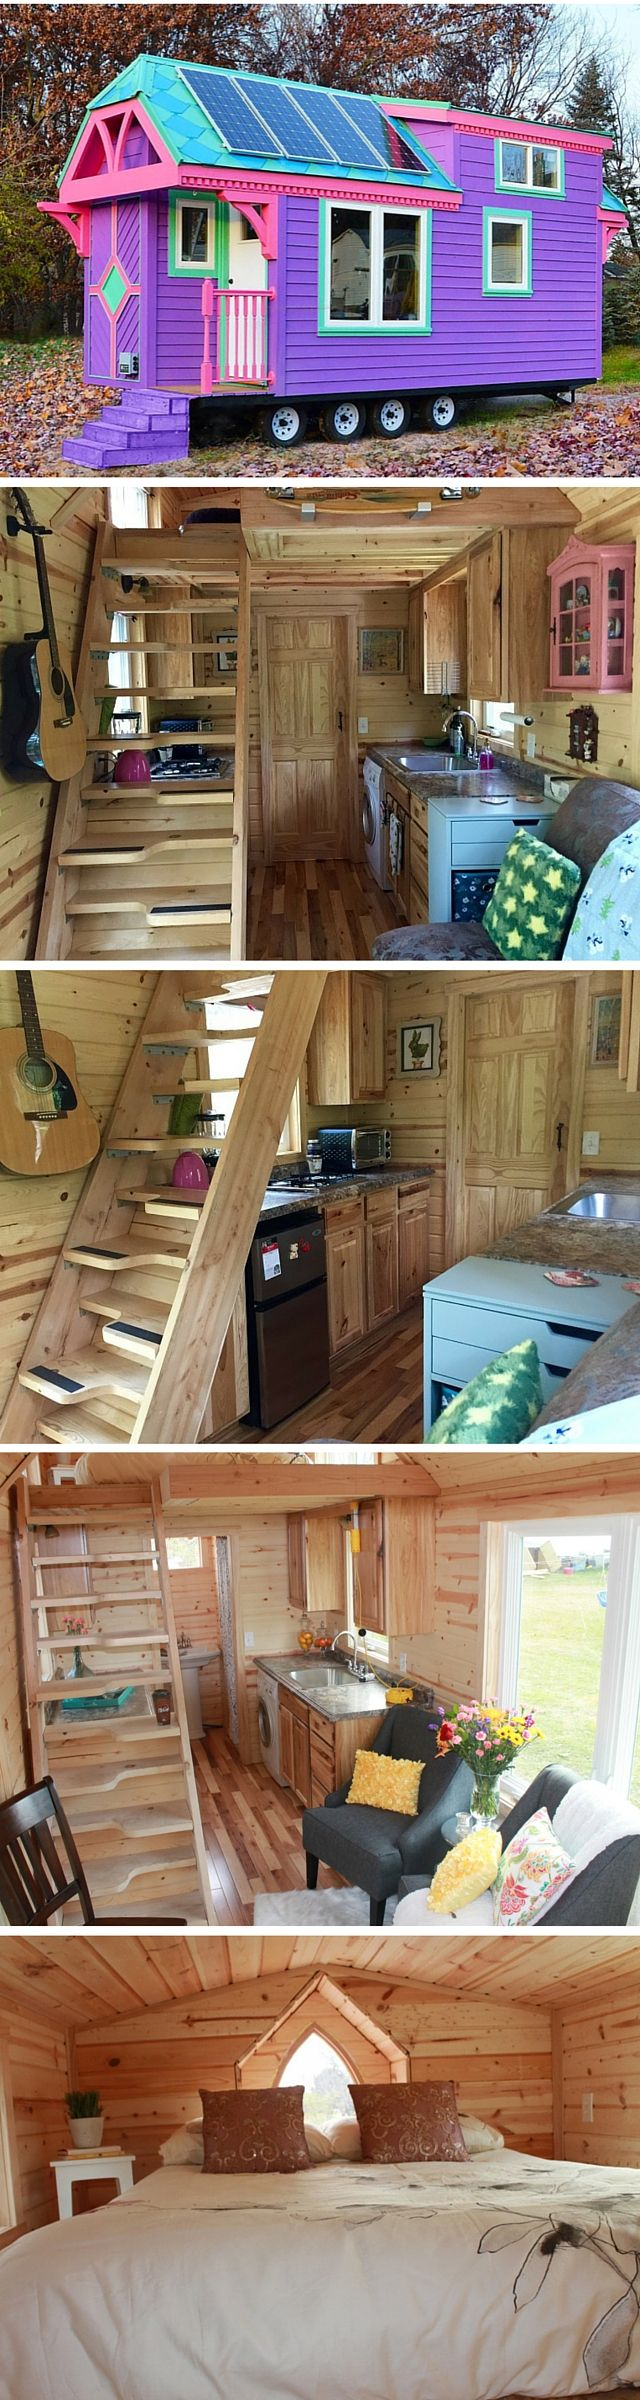 tiny house interiors hgtv kitchen remodel best images about Tiny House Interiors on Pinterest Loft Buses and Tiny kitchens